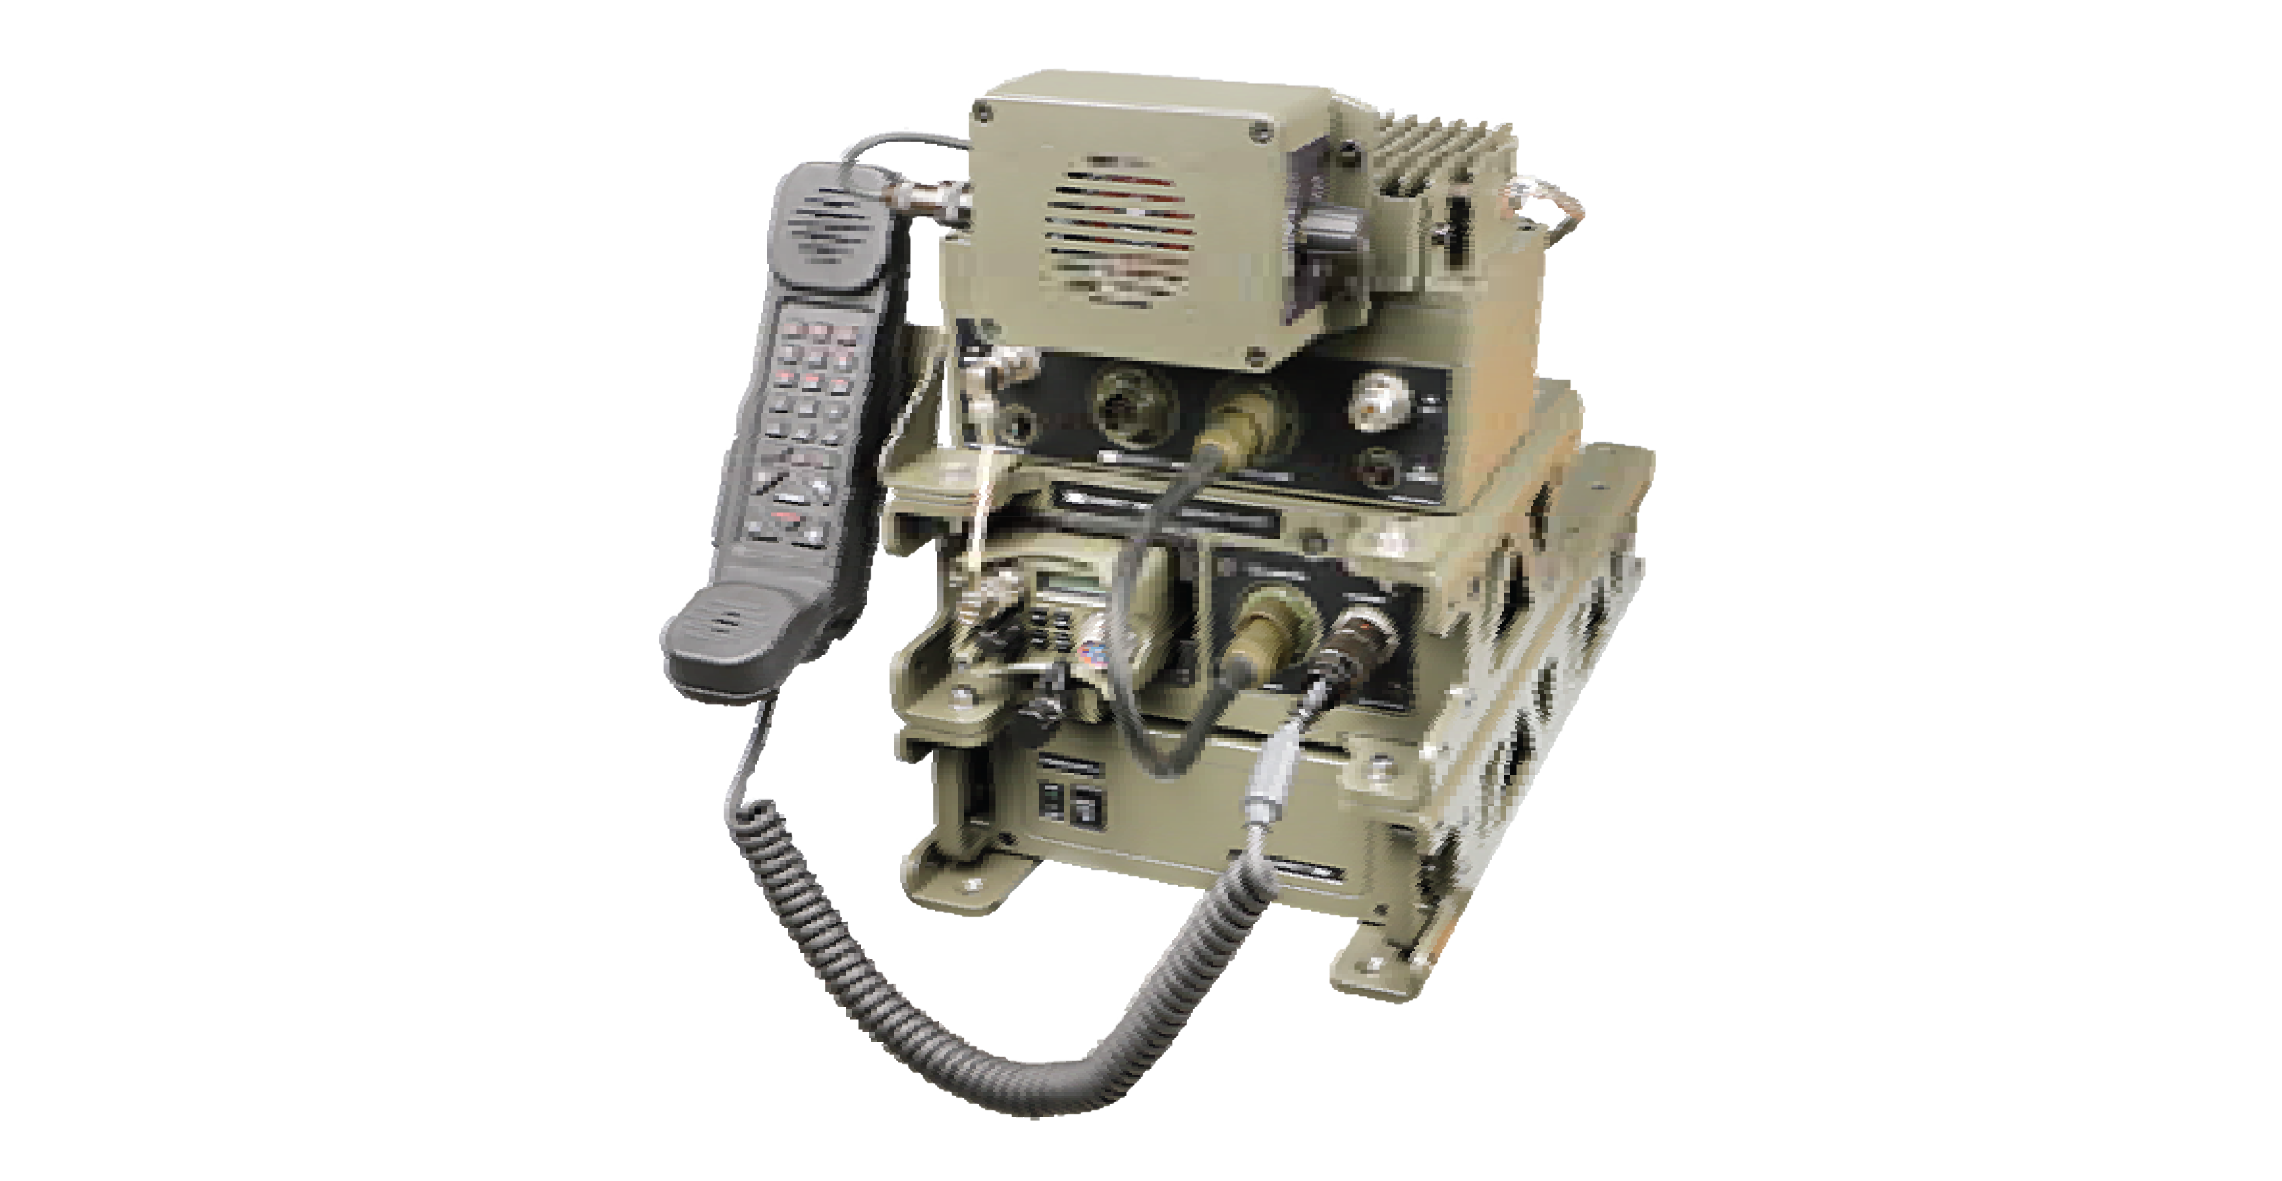 PRC-2084+ 50 W VHF Base package